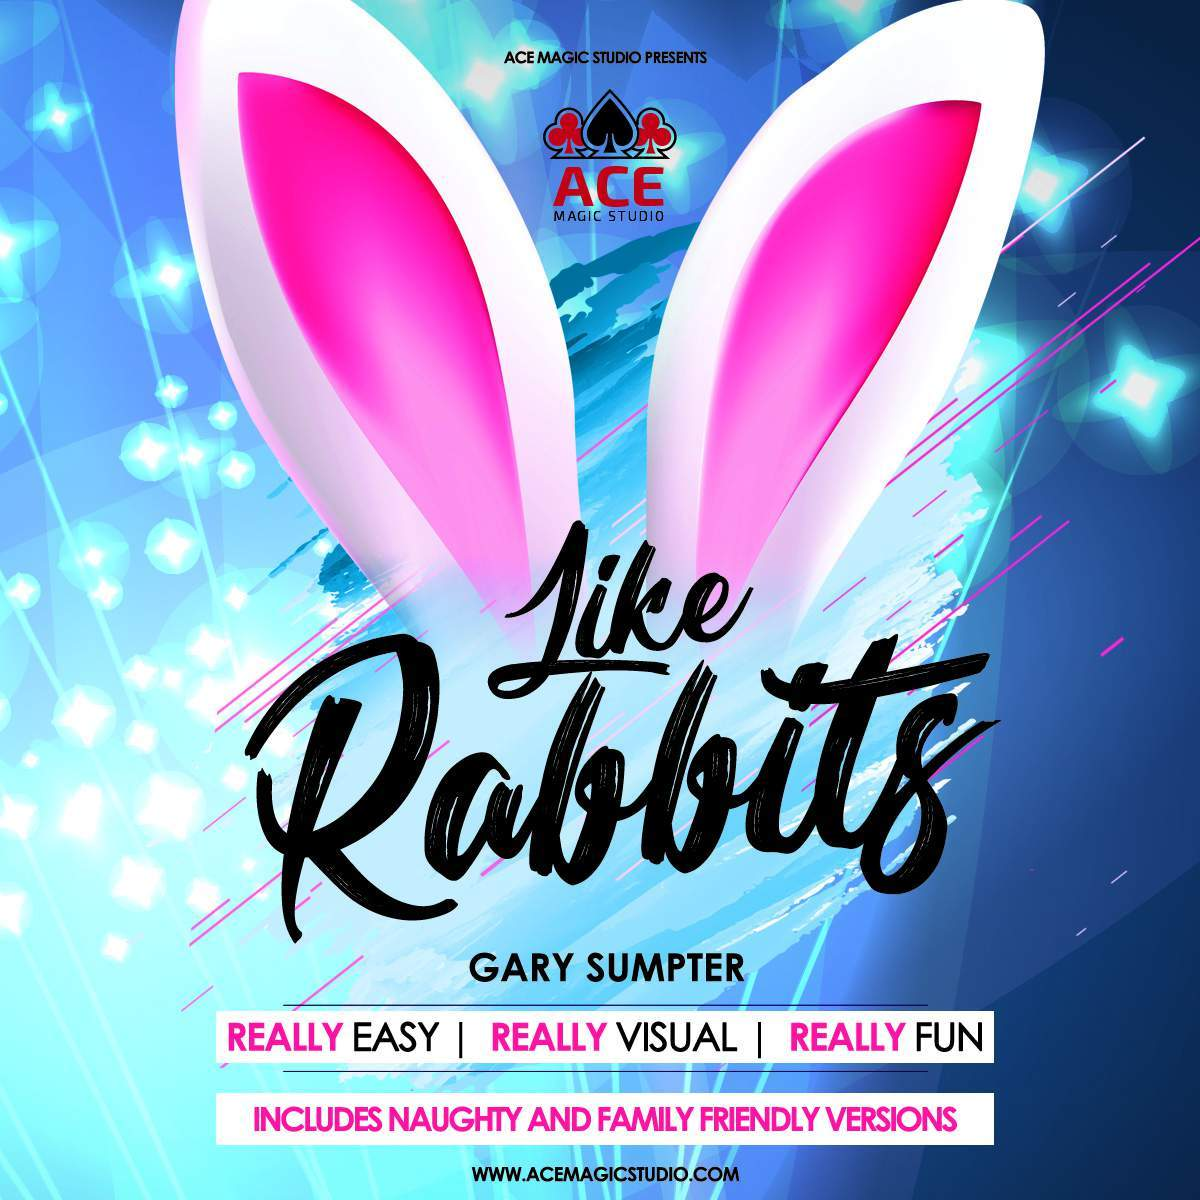 Like Rabbits by Gary Sumpter